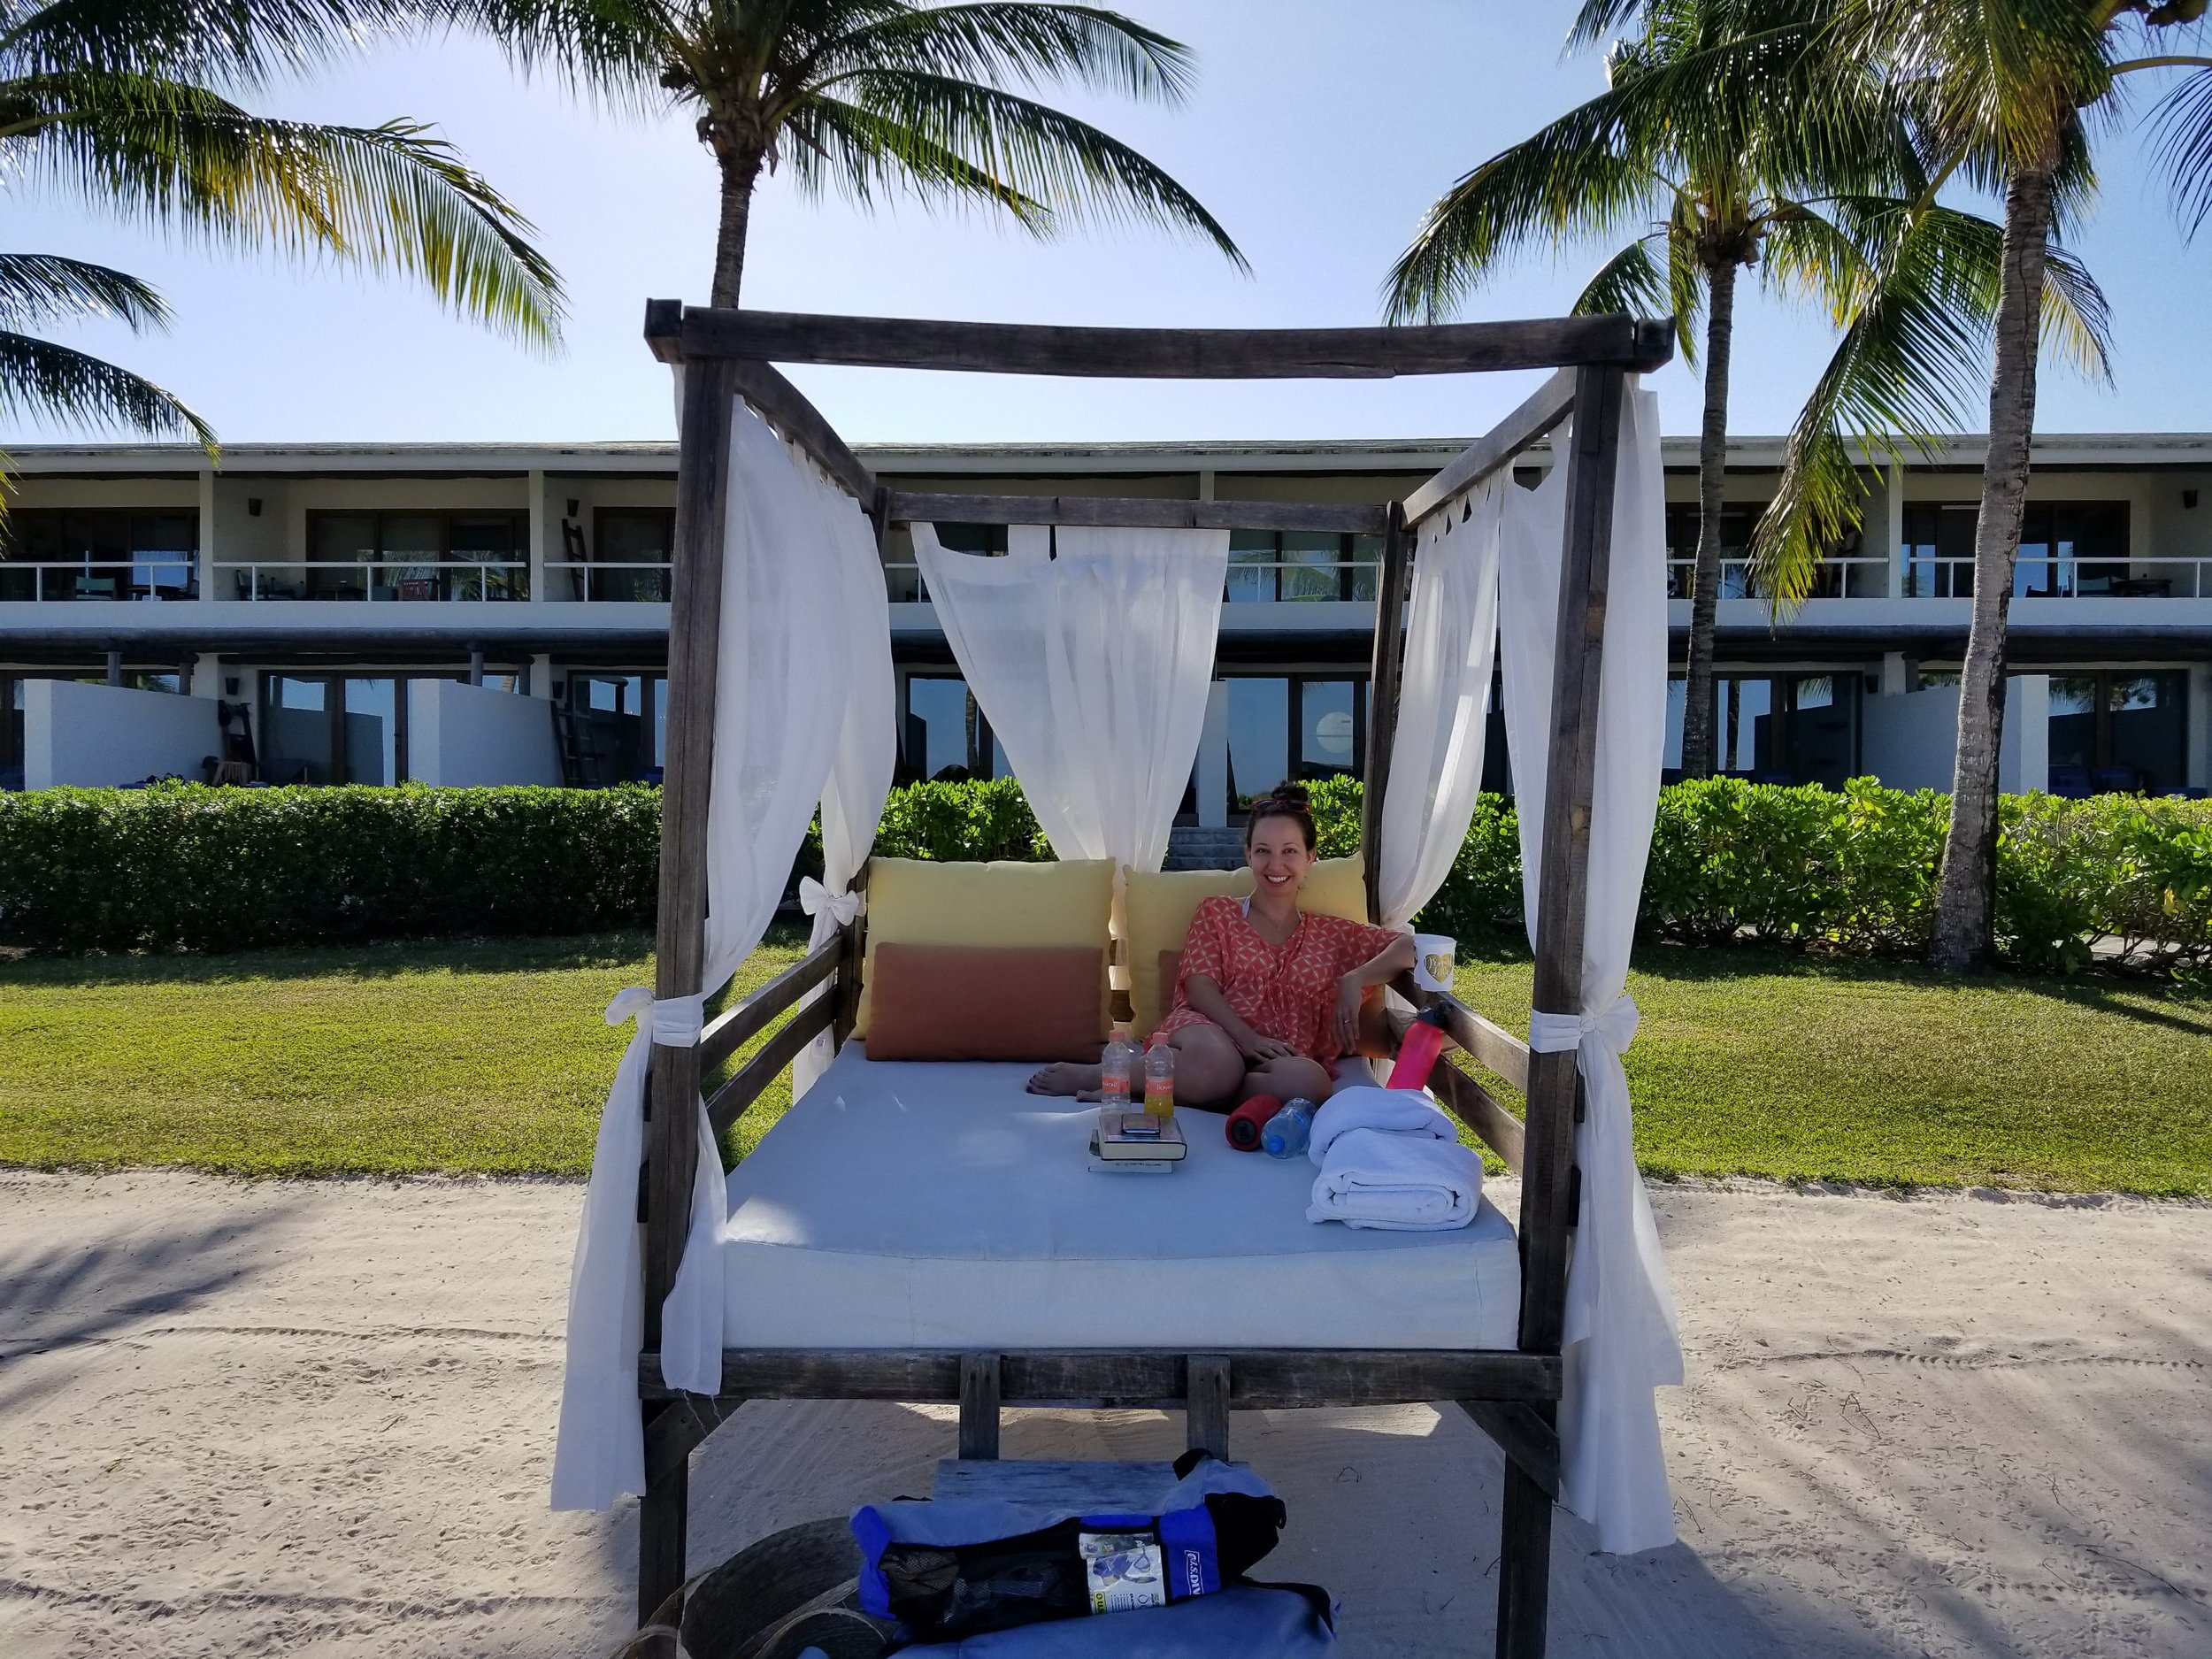 Cabana's are available to use.